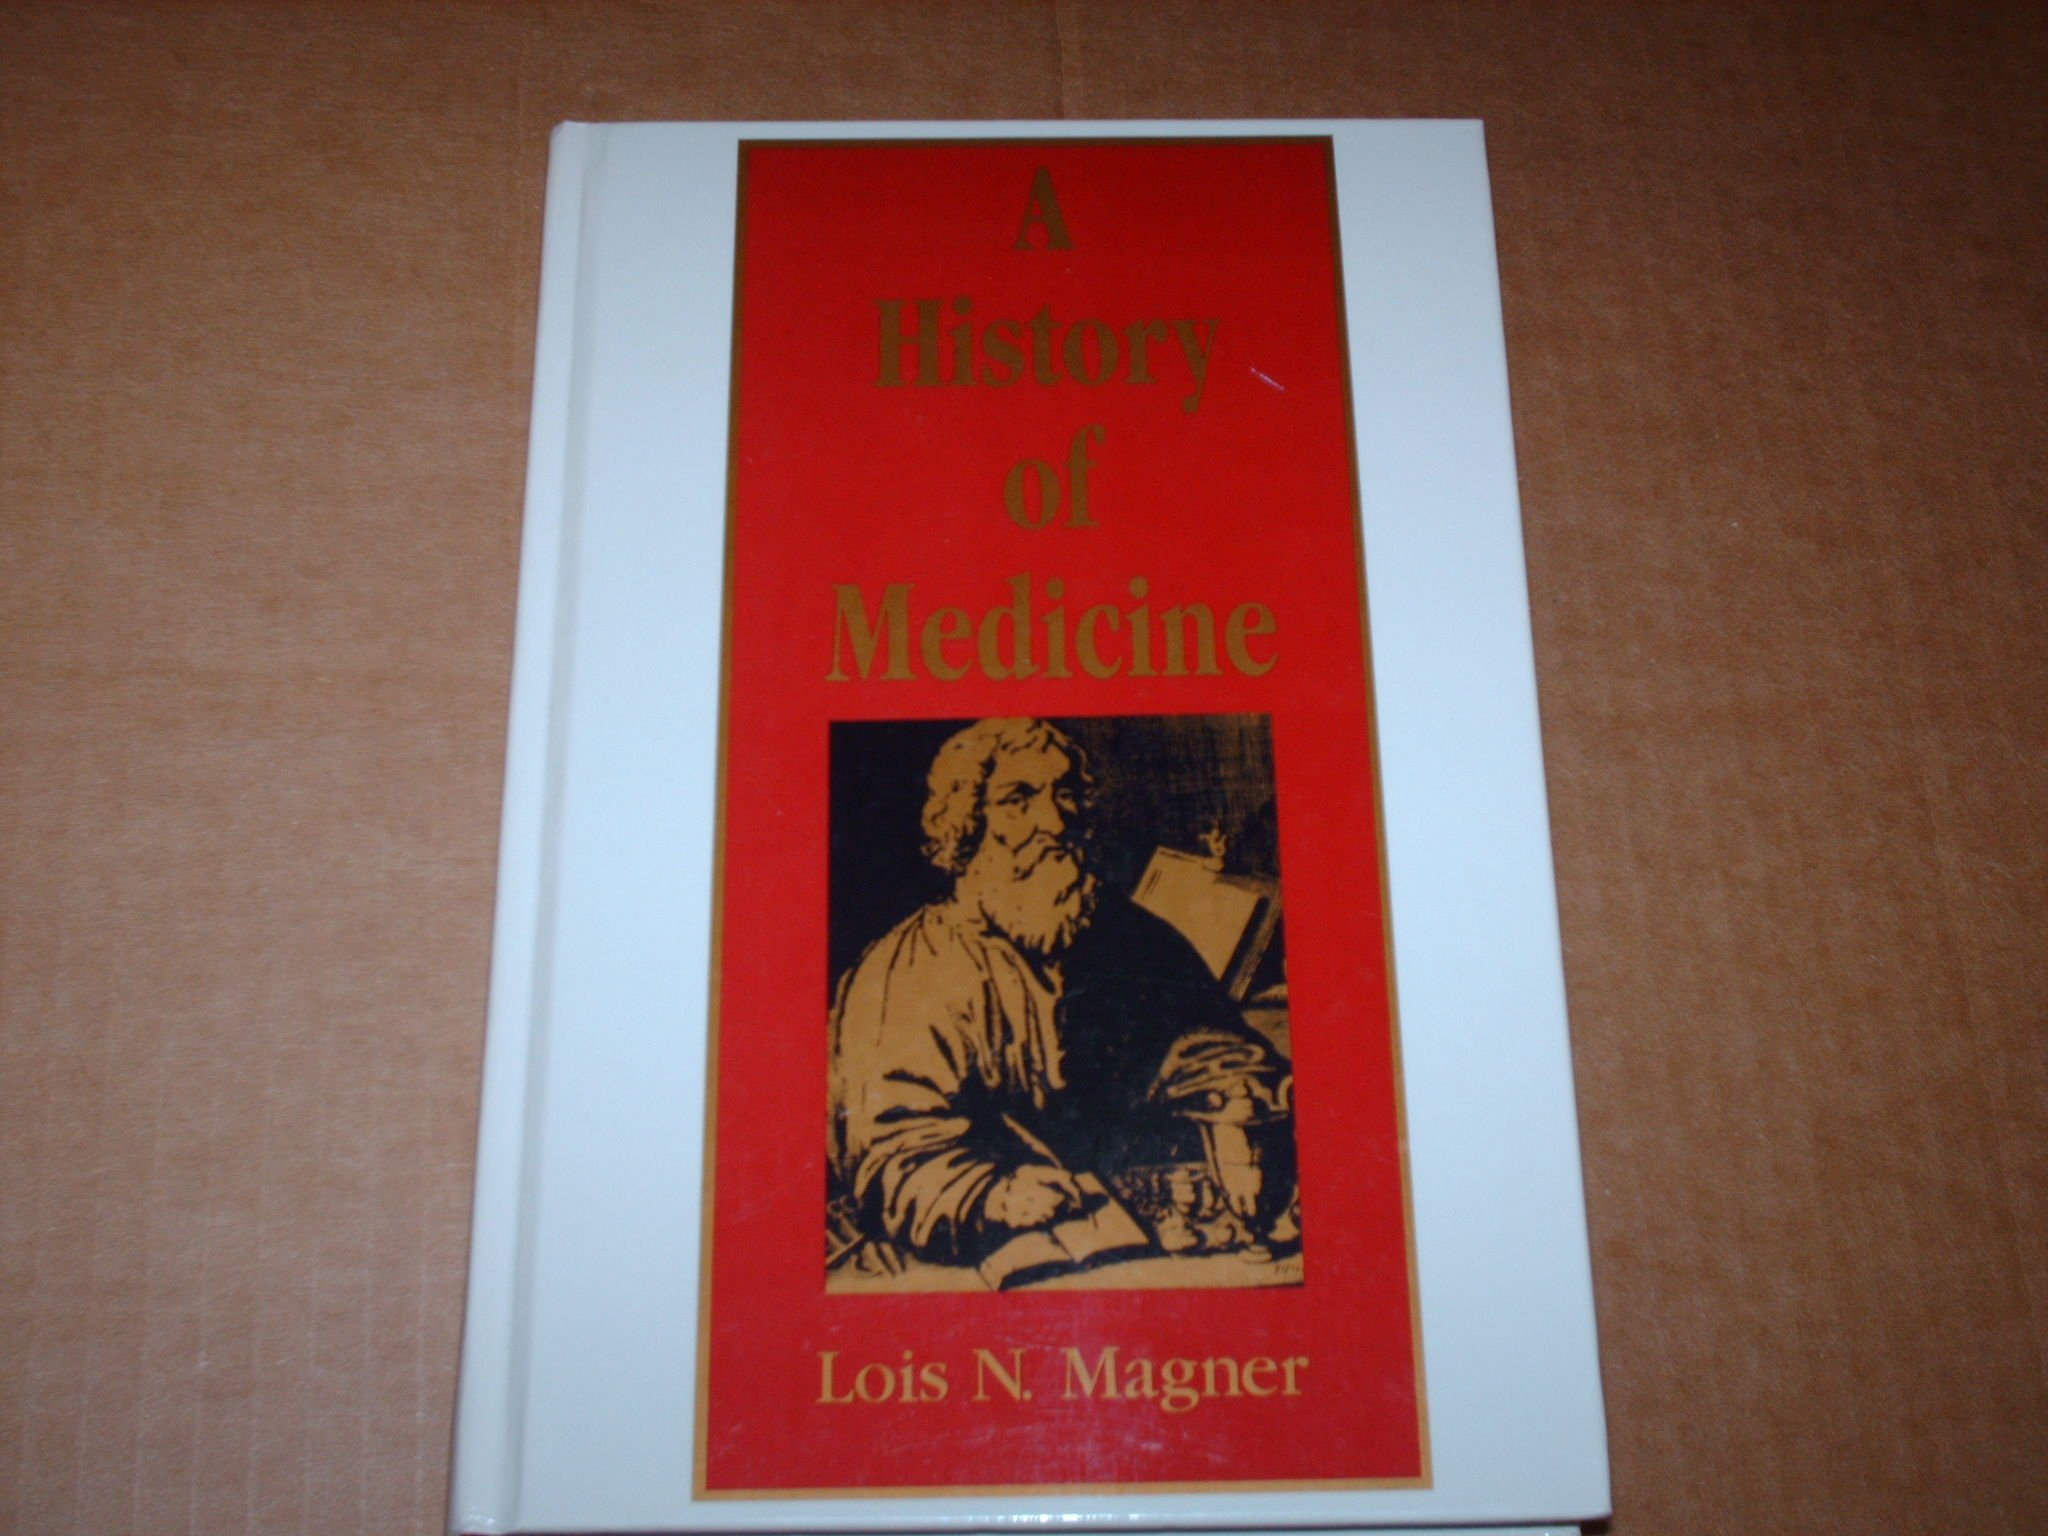 A history of medicine by Lois N. Magner. book cover